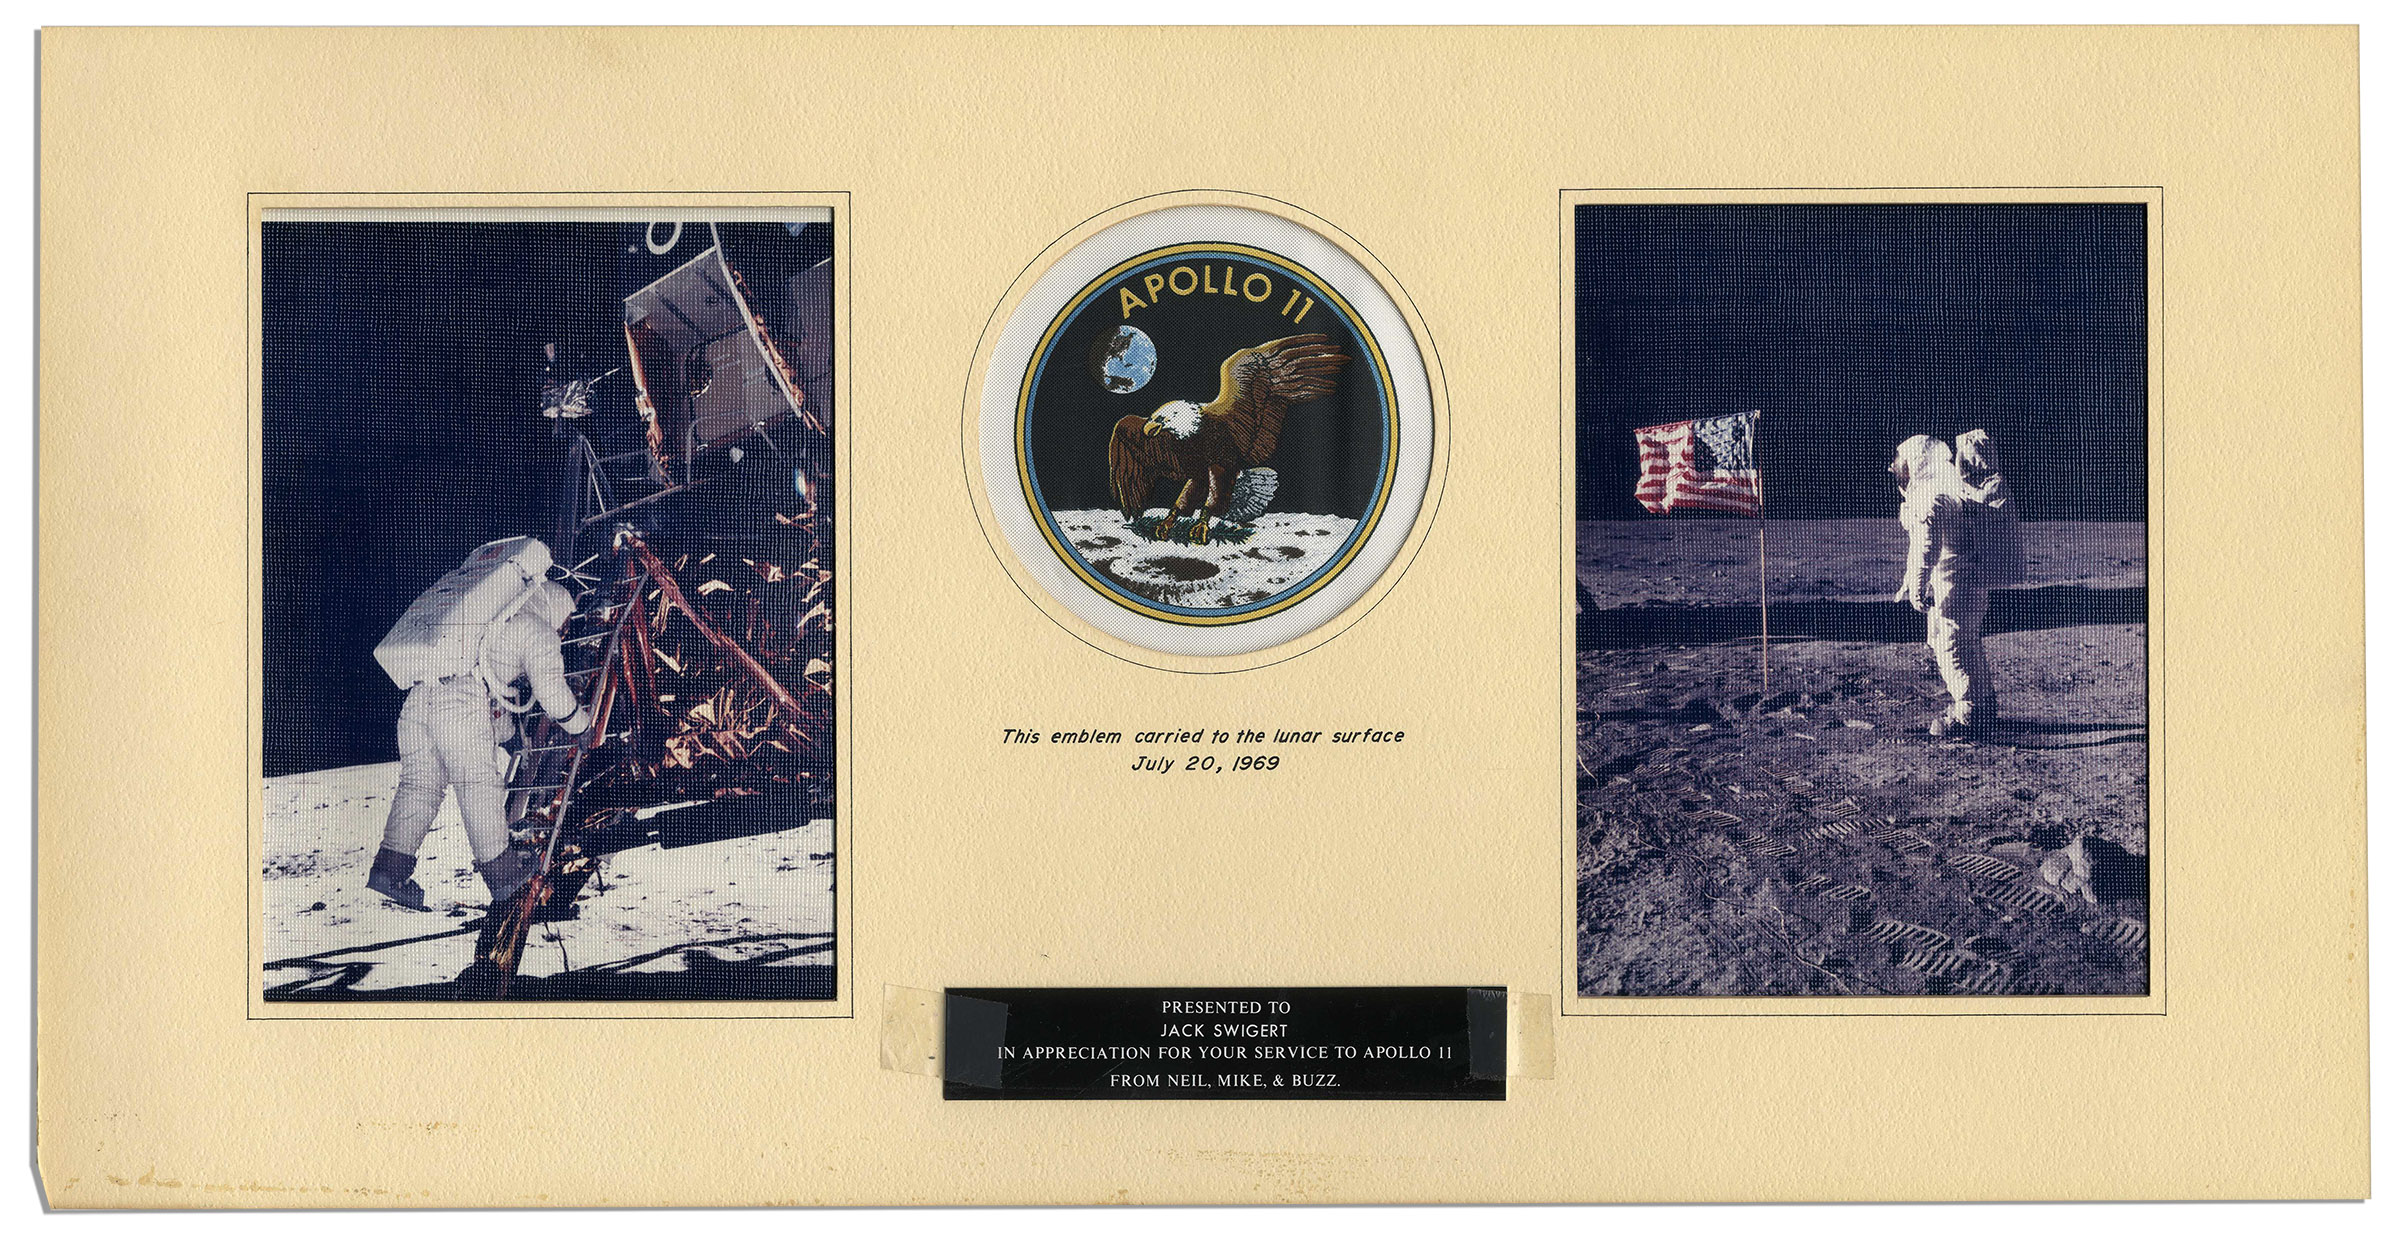 Apollo 11 Patch Flown to the Moon Jack Swigert's Own Official NASA Apollo 11 Patch Flown to the Lunar Surface